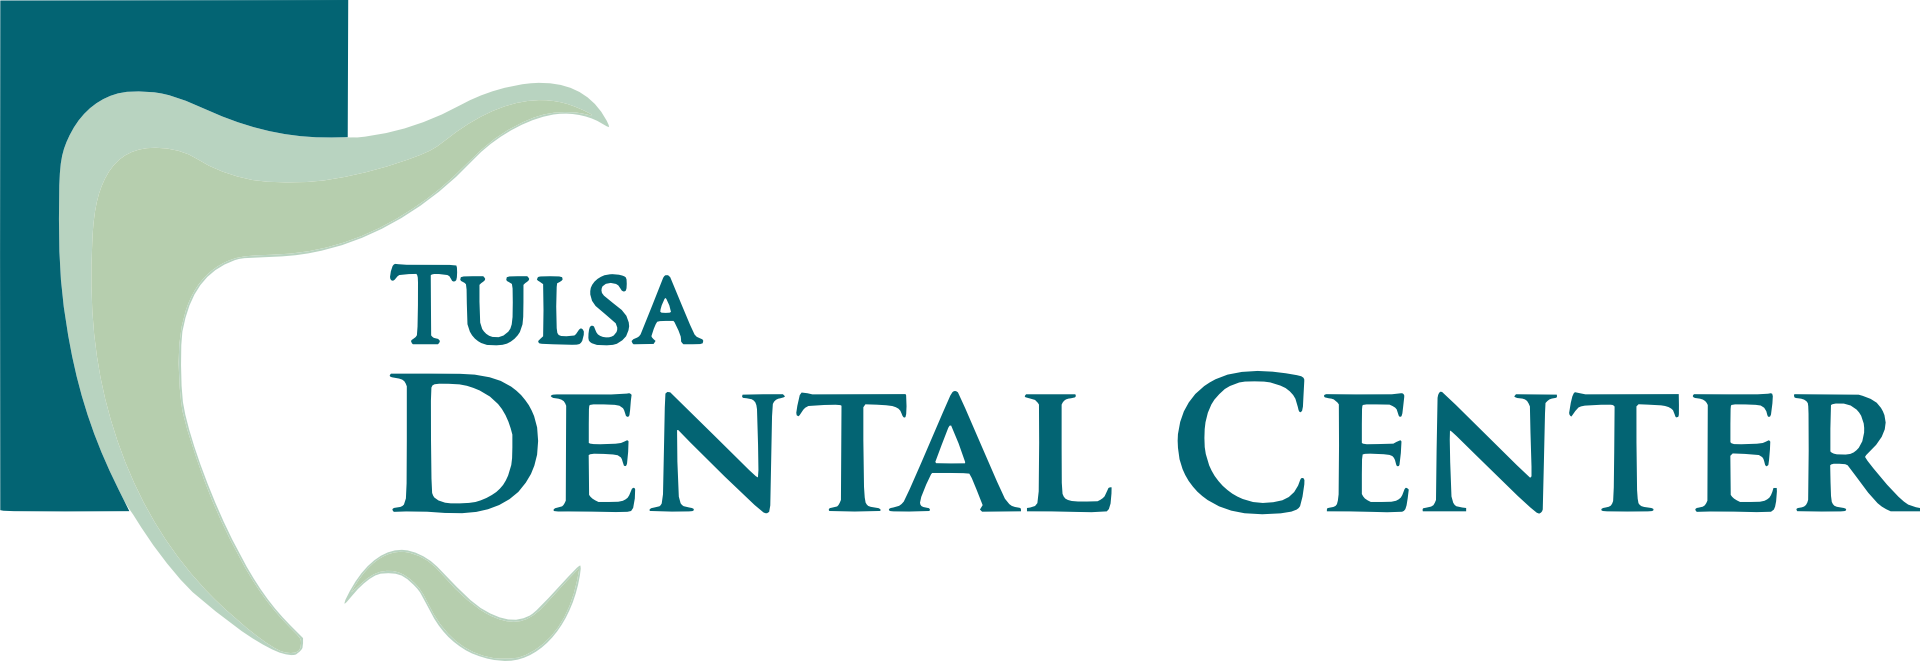 Tulsa Dental Center reviews | Dental at 4824 S. Union Ave - Tulsa